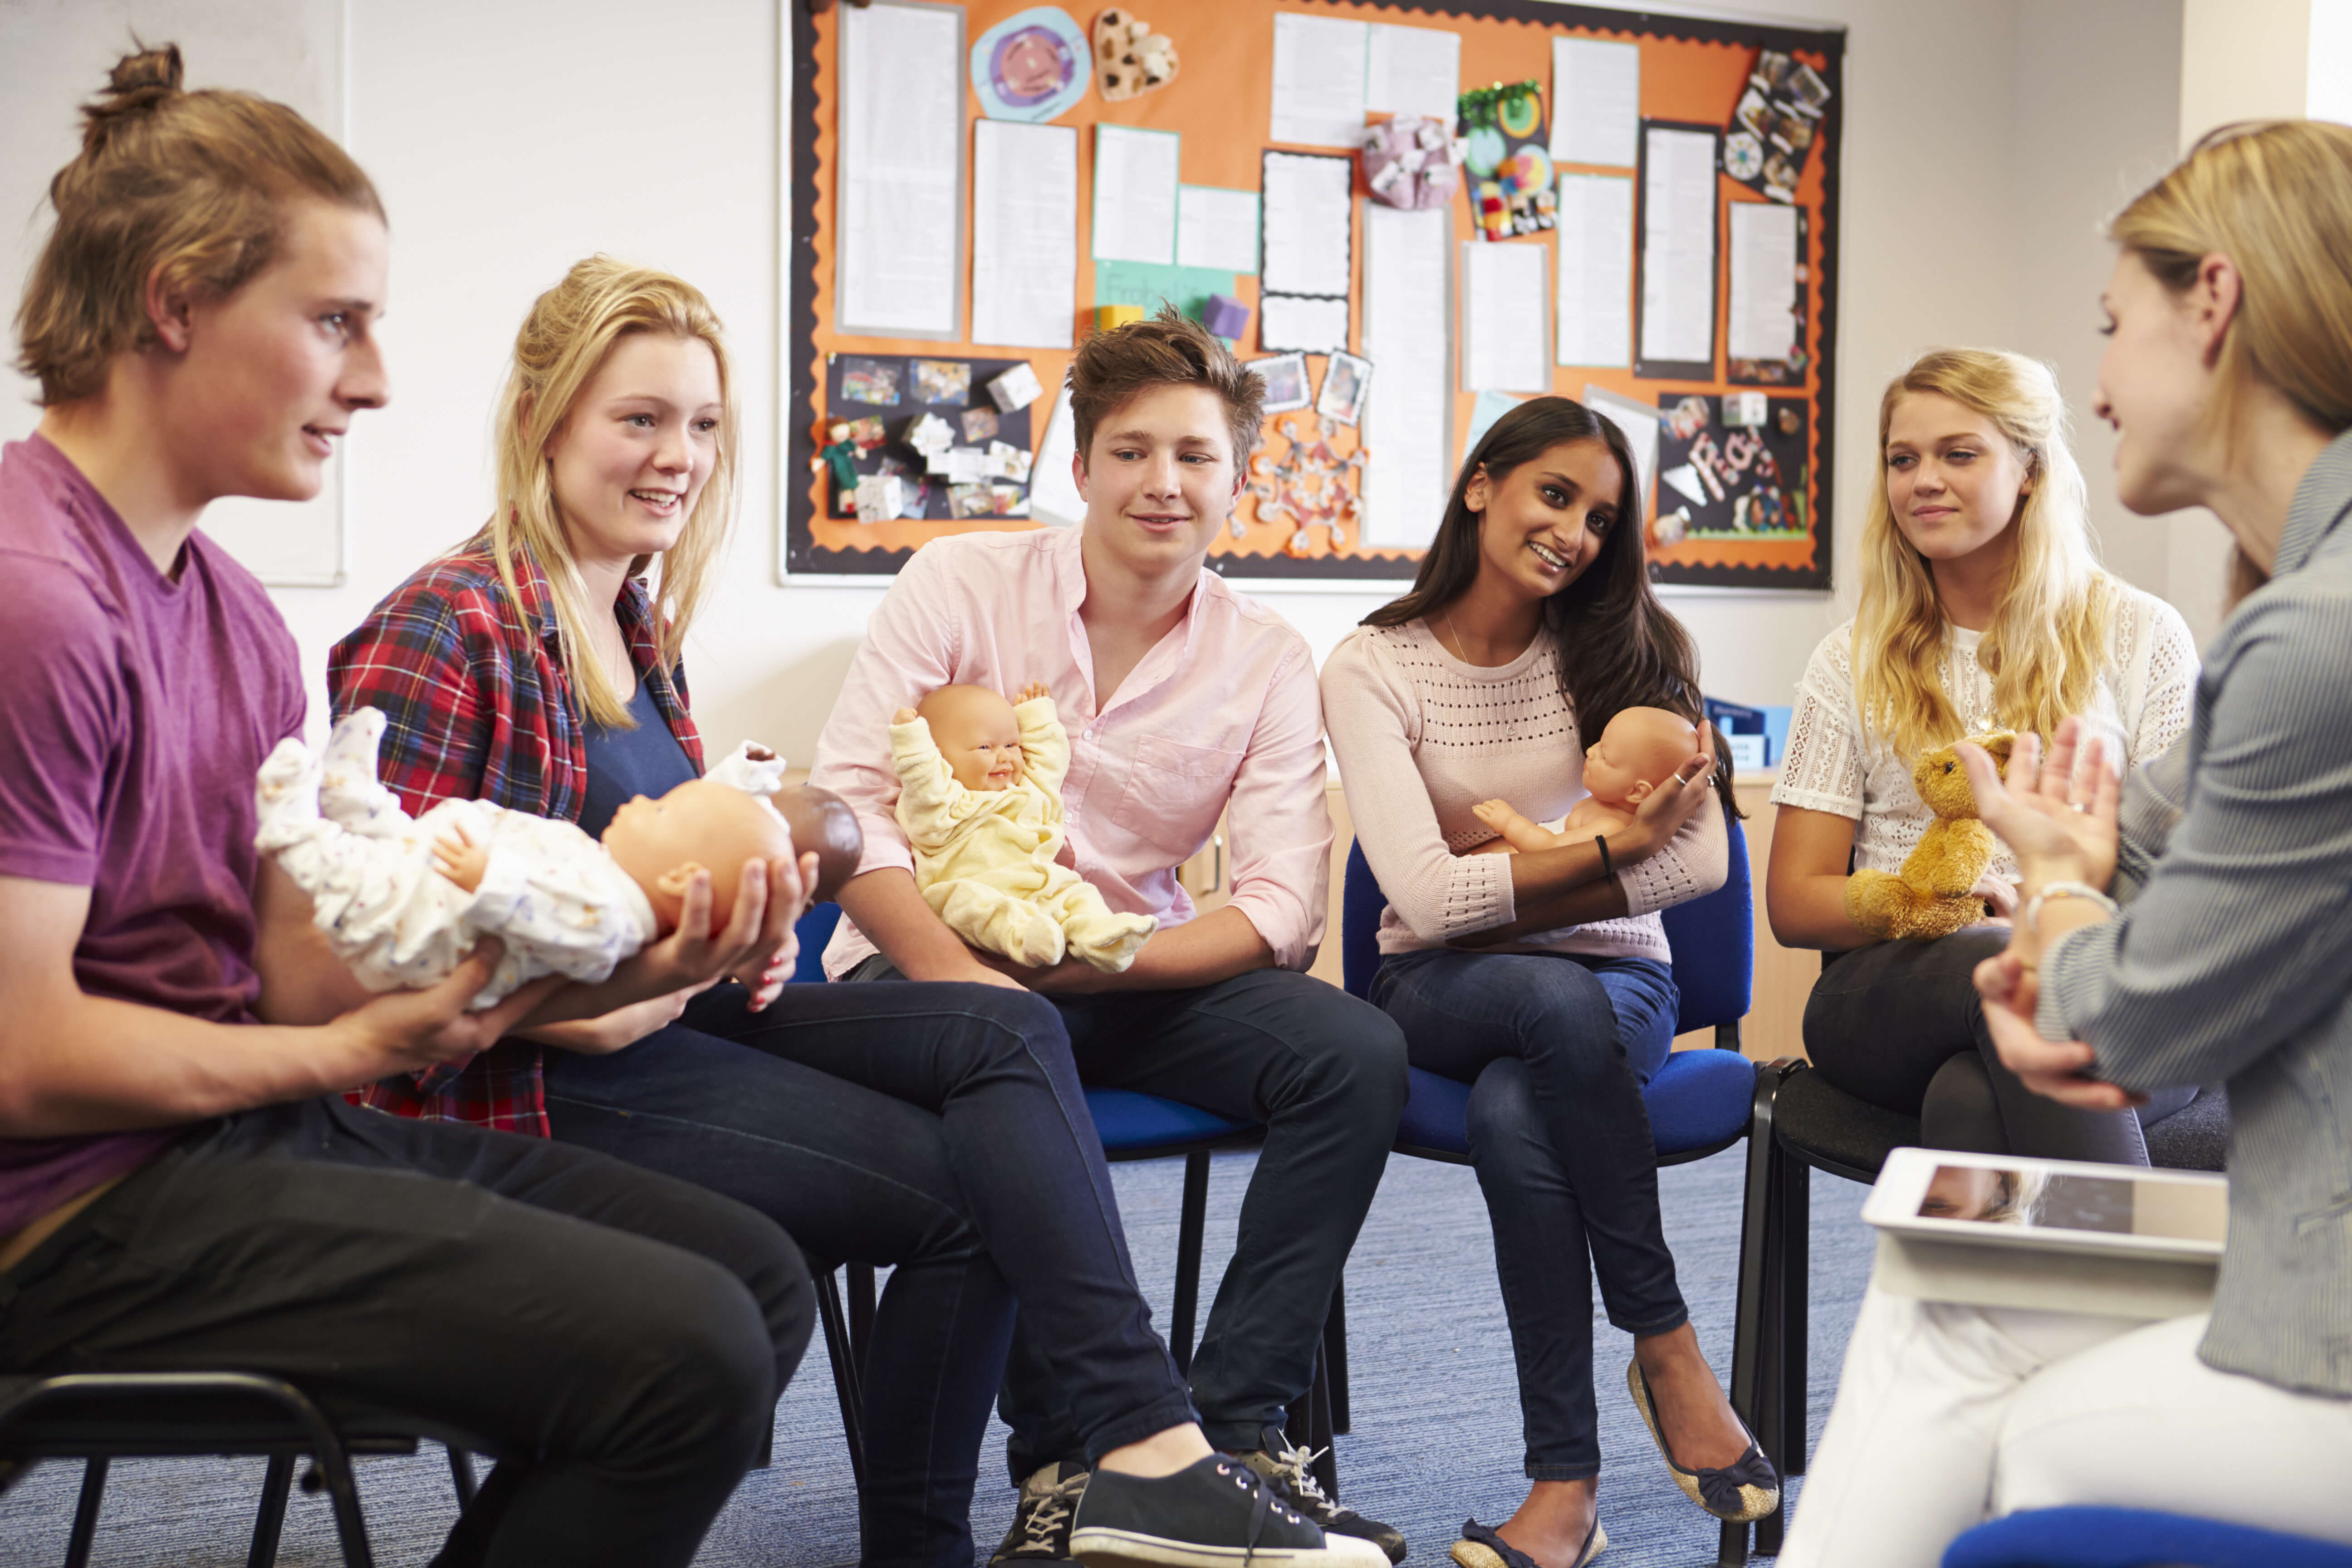 Women sitting in a circle holding baby dolls